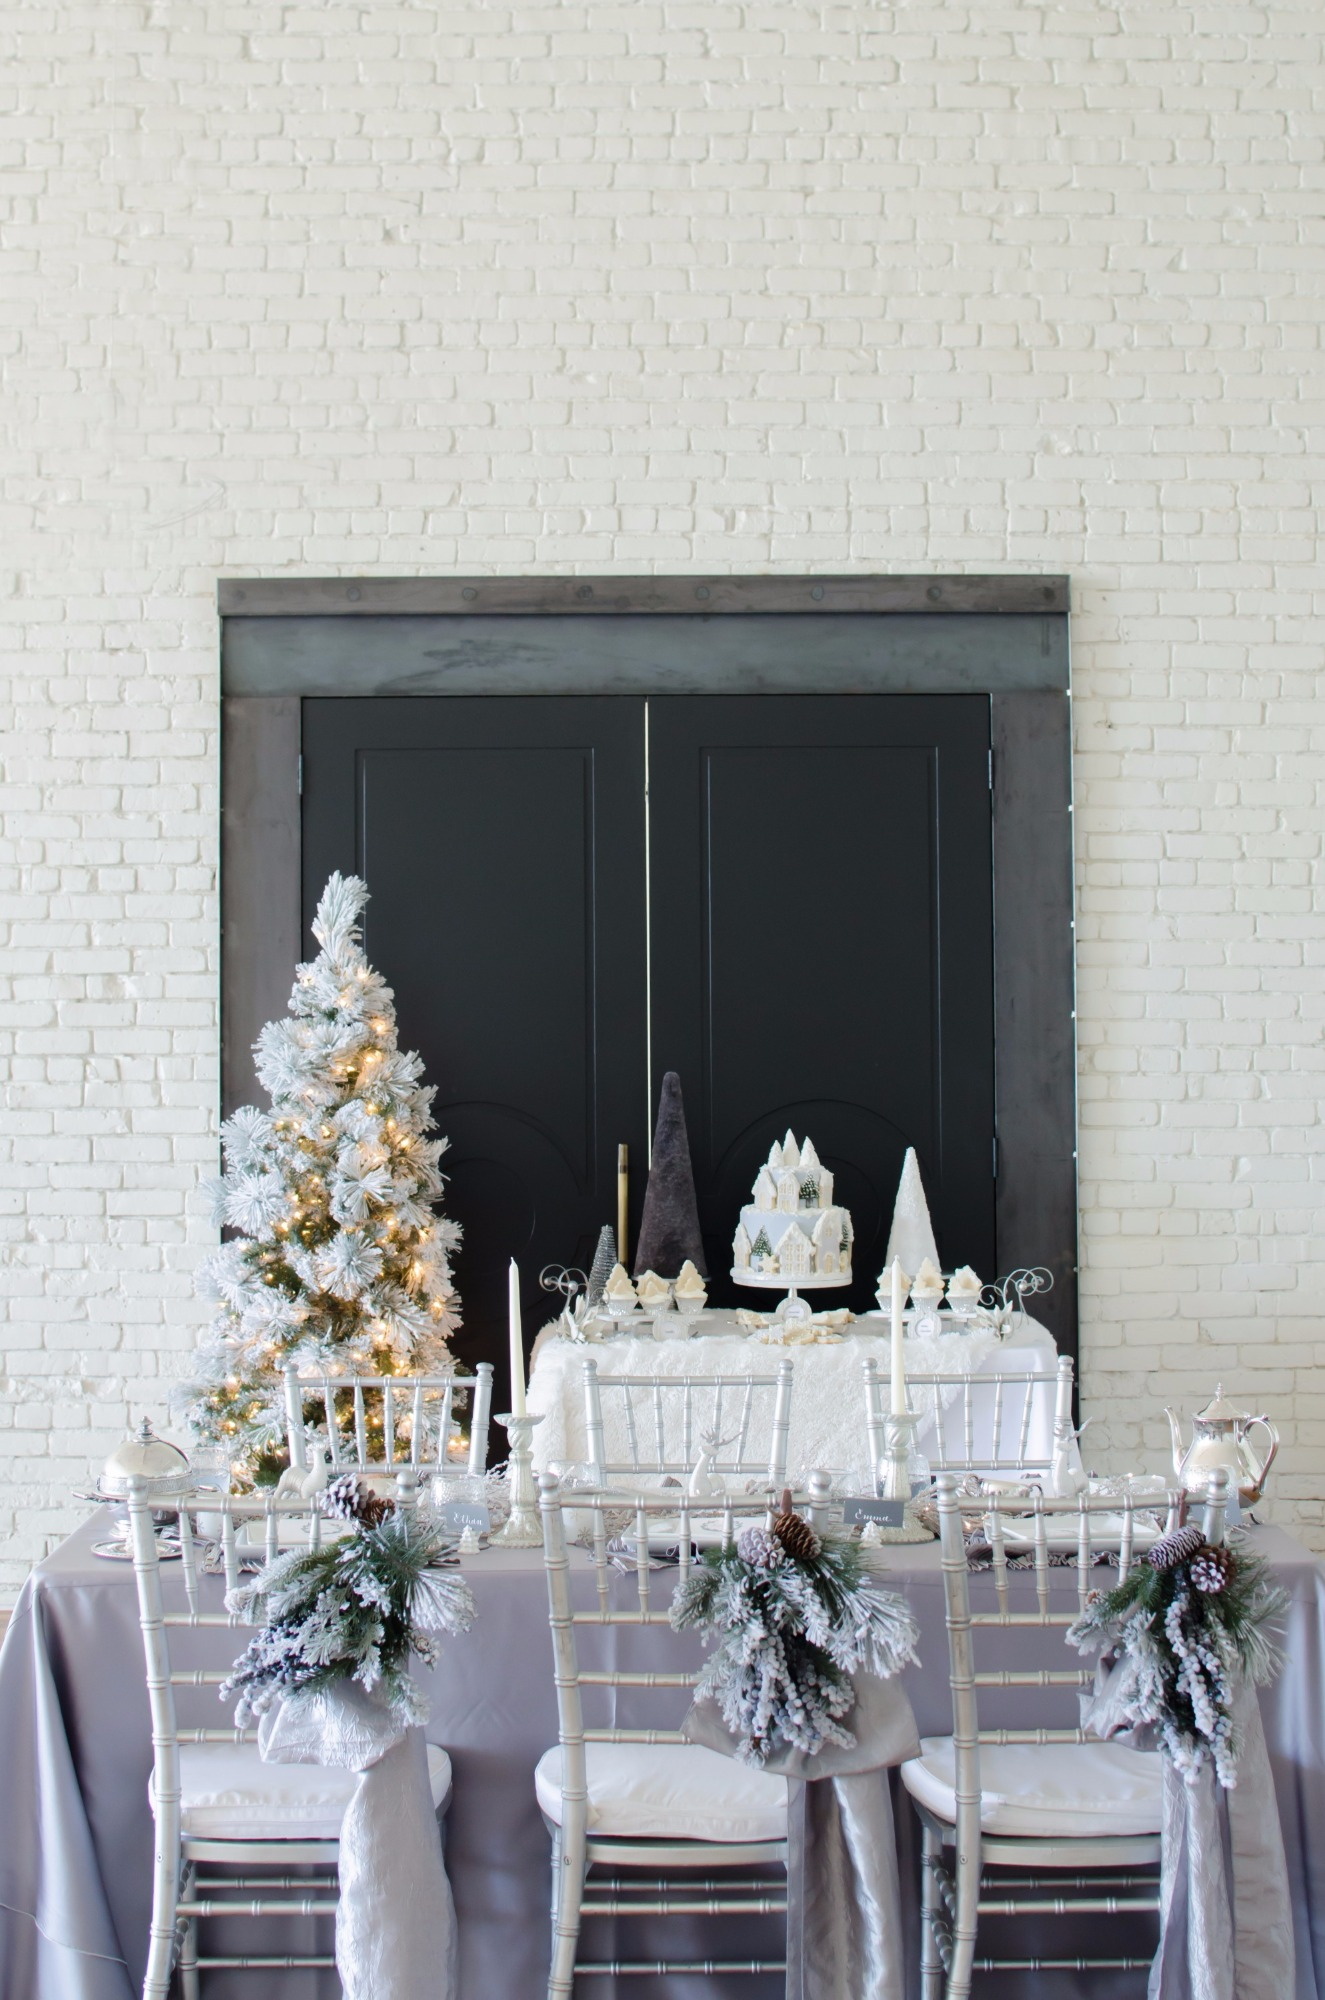 Dessert Table and Tablescape from Winter Wonderland Shower Styled by Mint Event Design | Black Twine